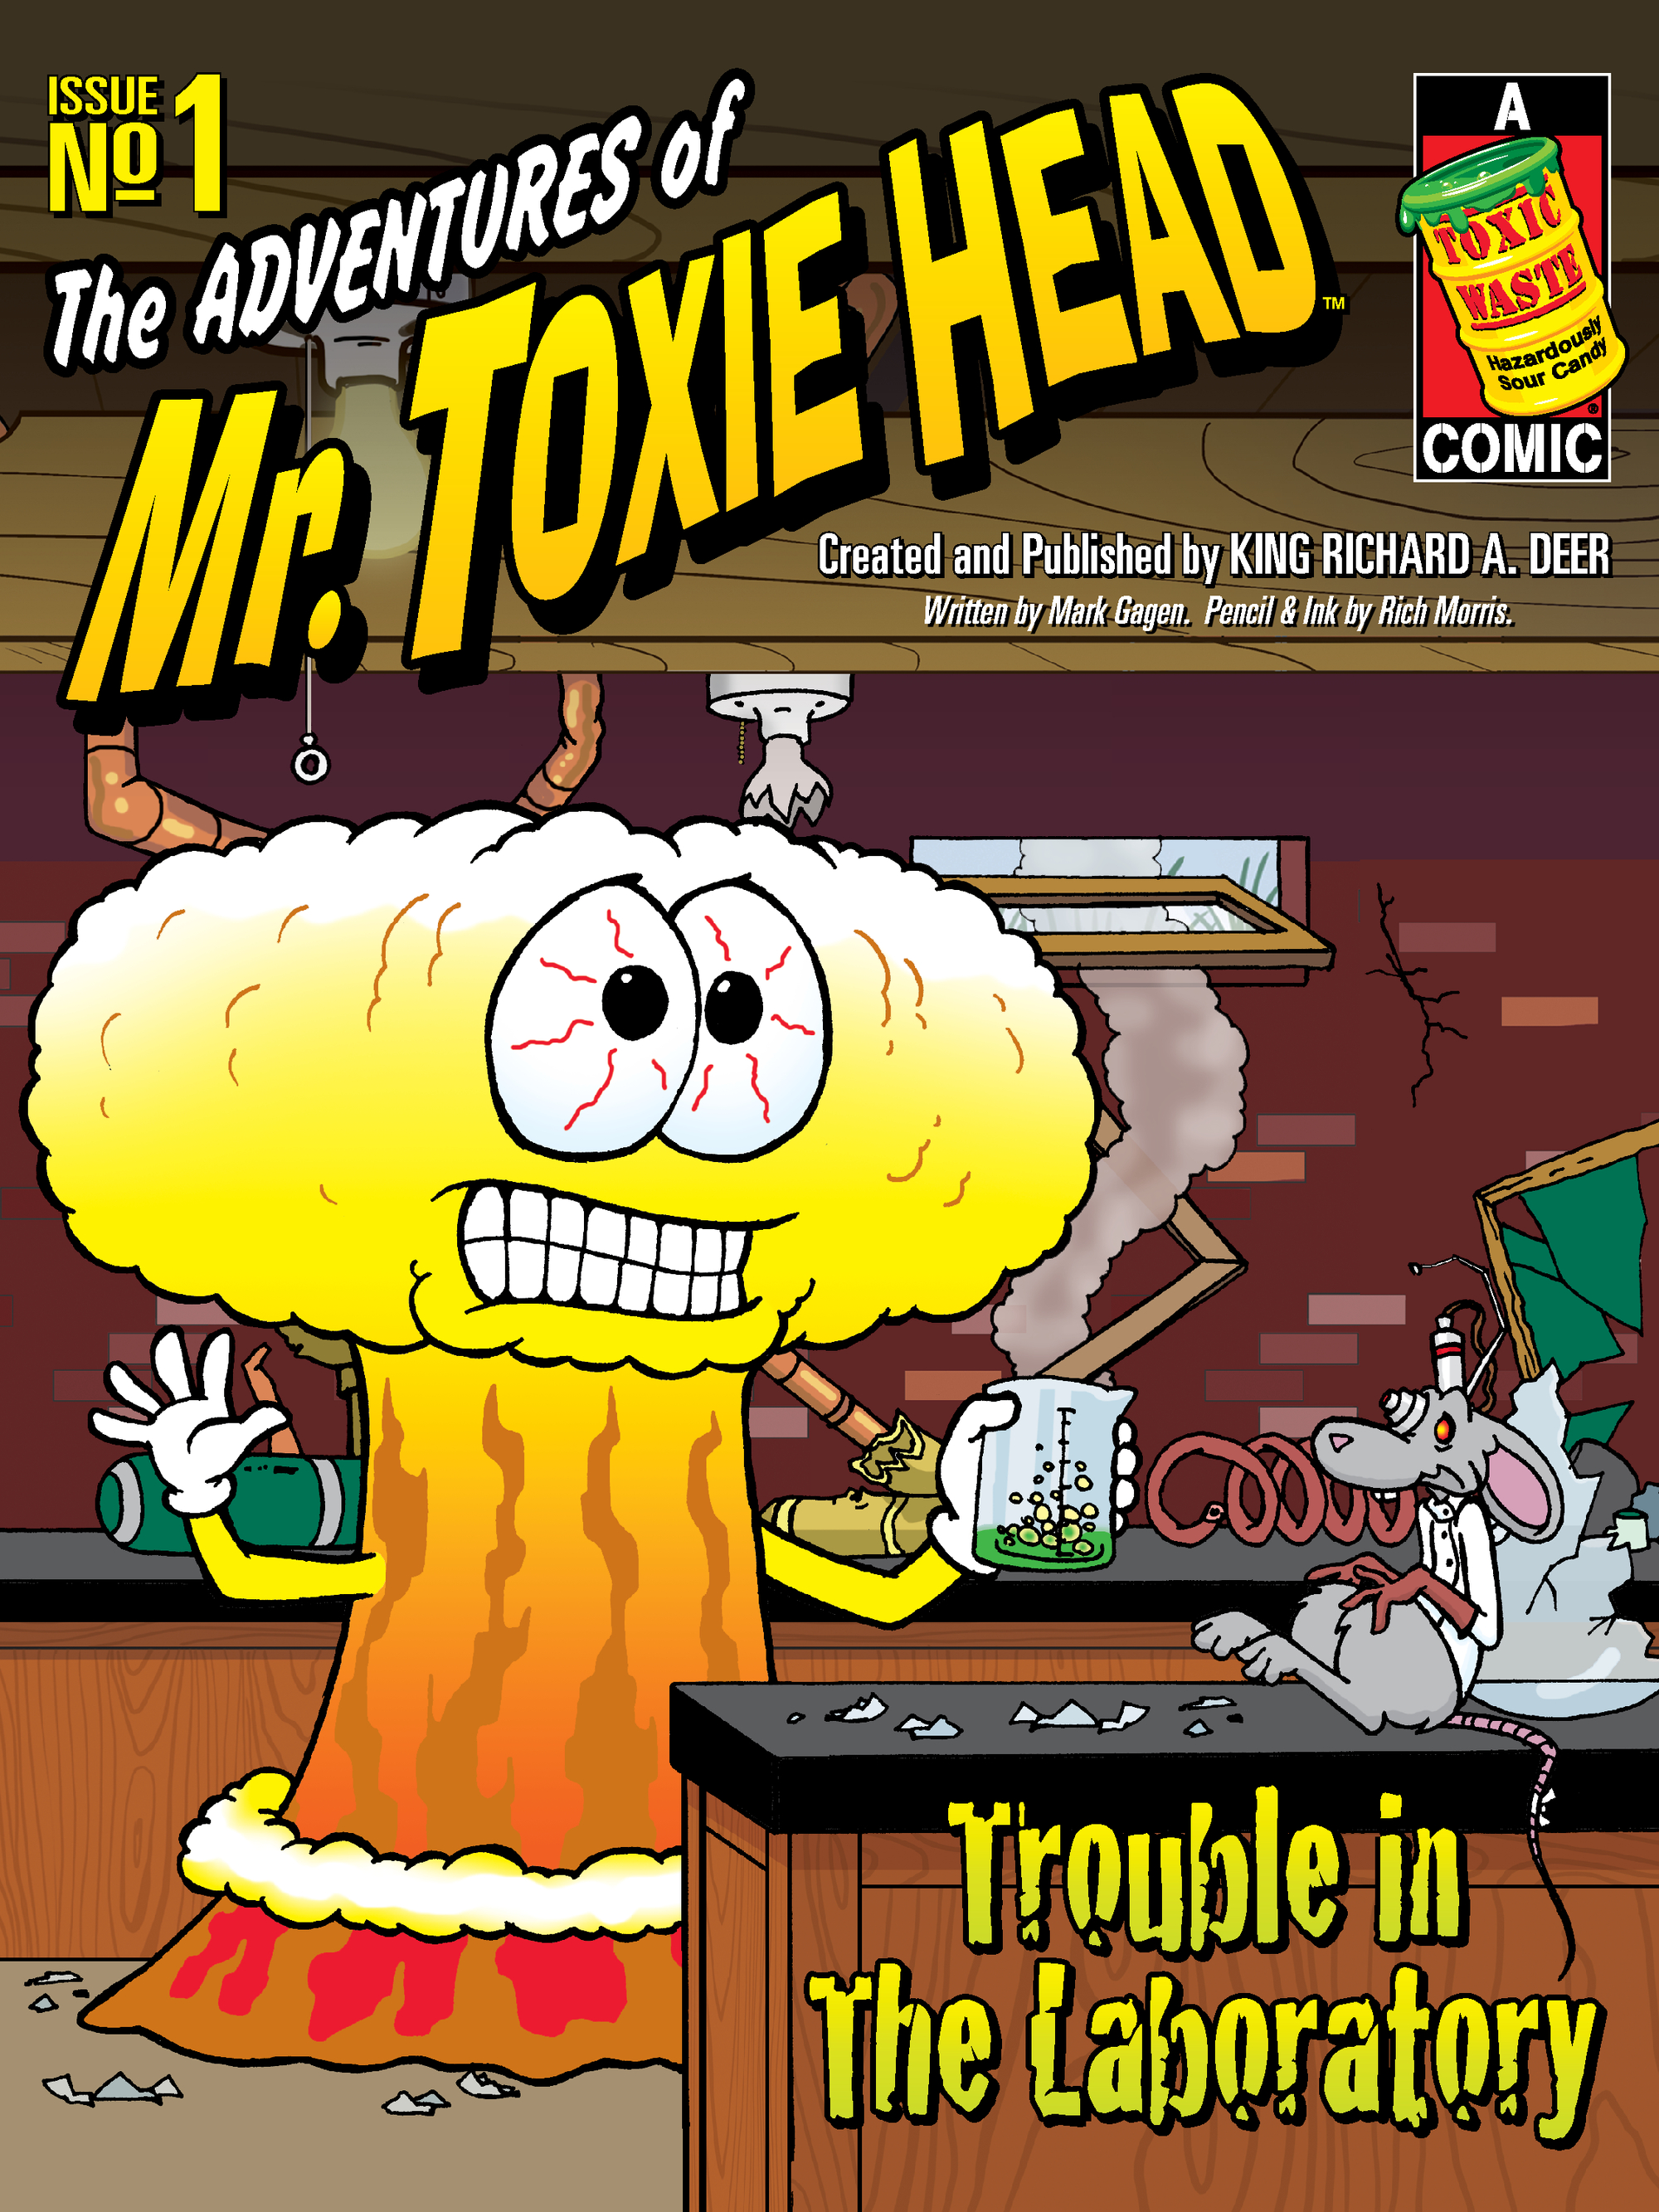 The Adventures of Mr. Toxie Head #1